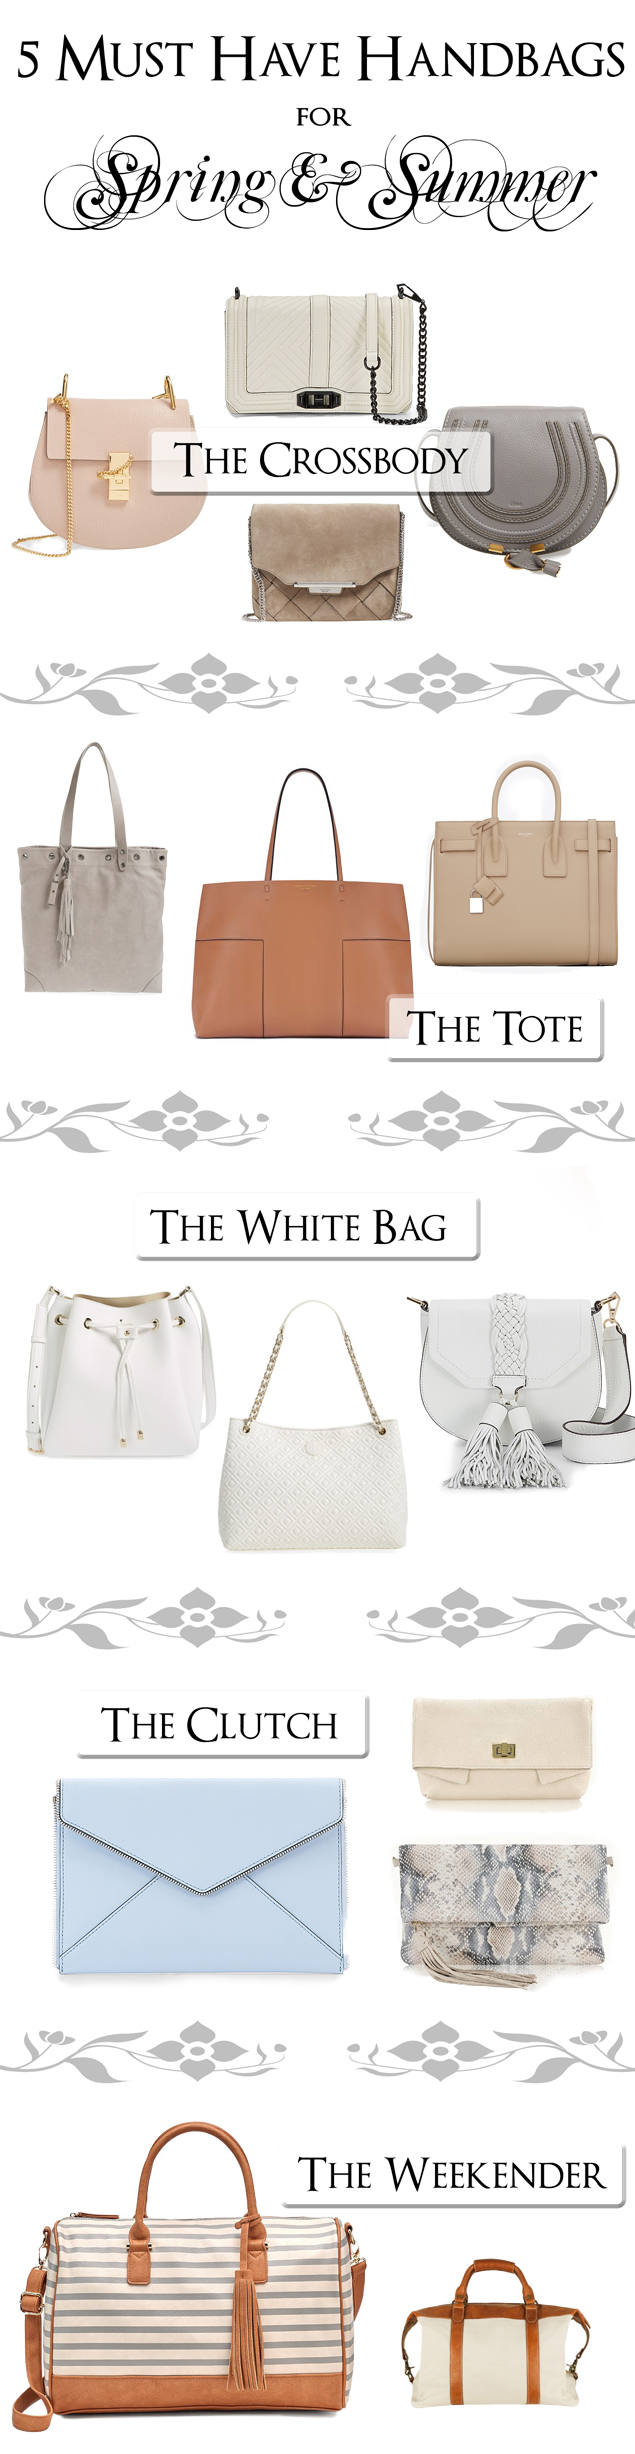 5 Must Have Handbags for Spring & Summer